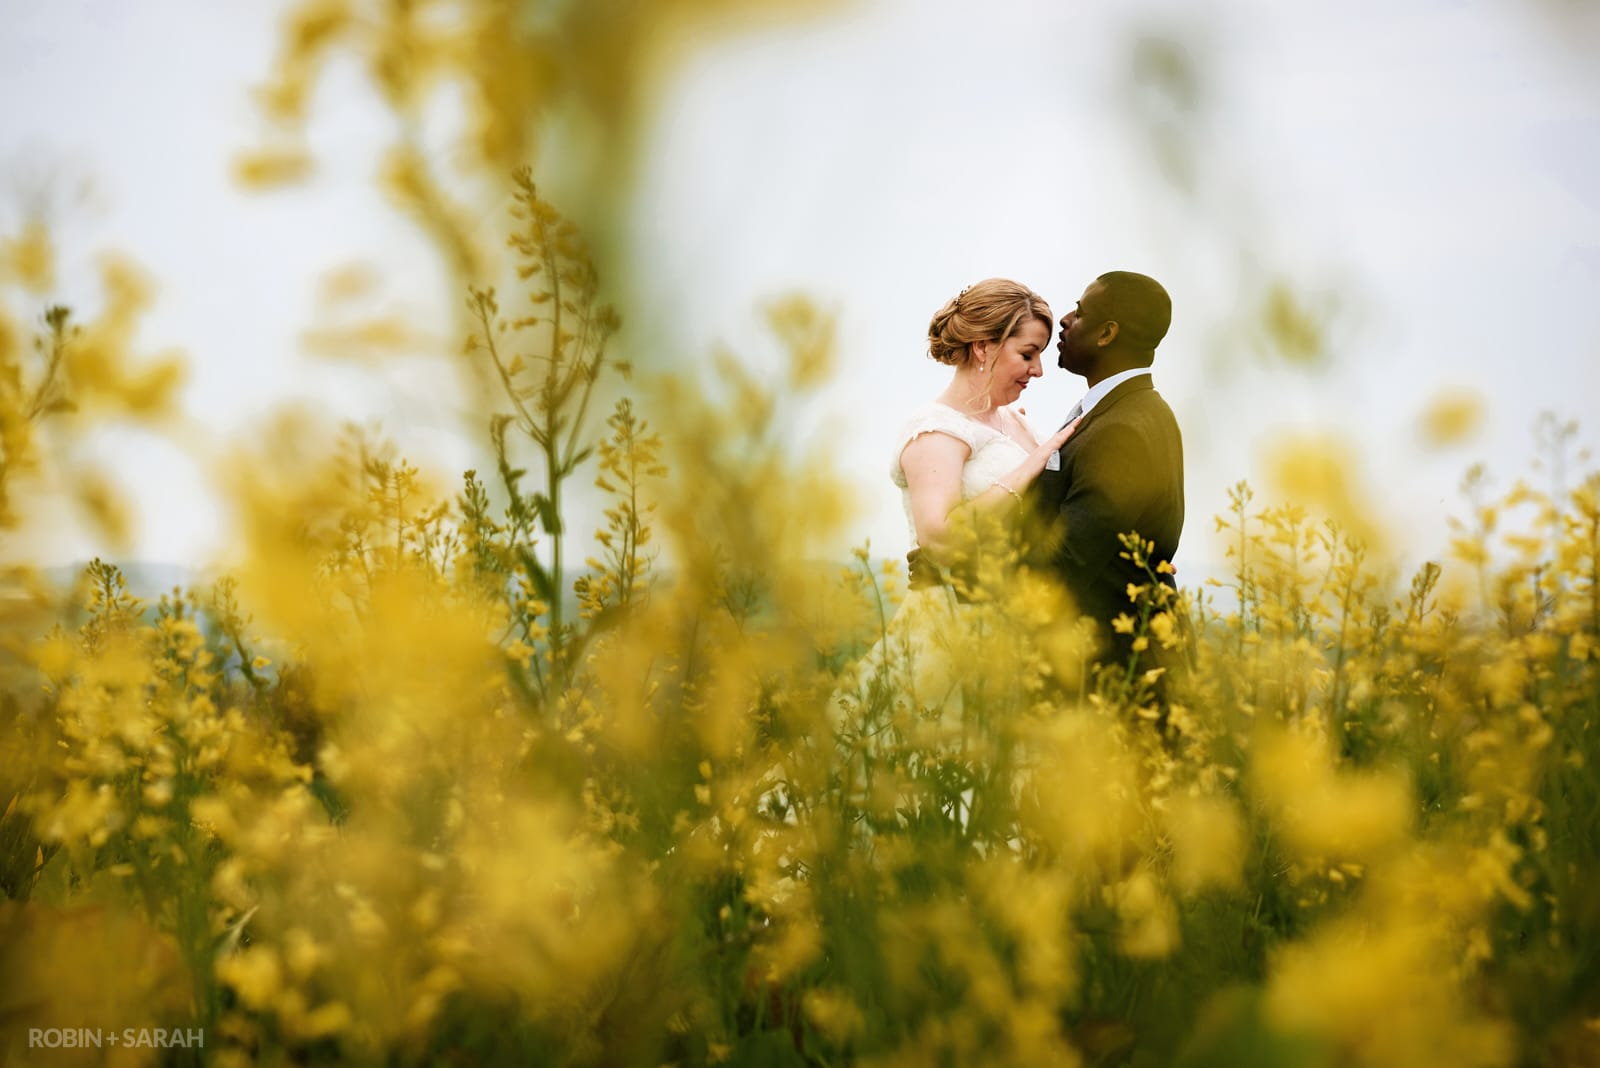 Bride and groom share a quiet moment in a beautiful yellow crop field